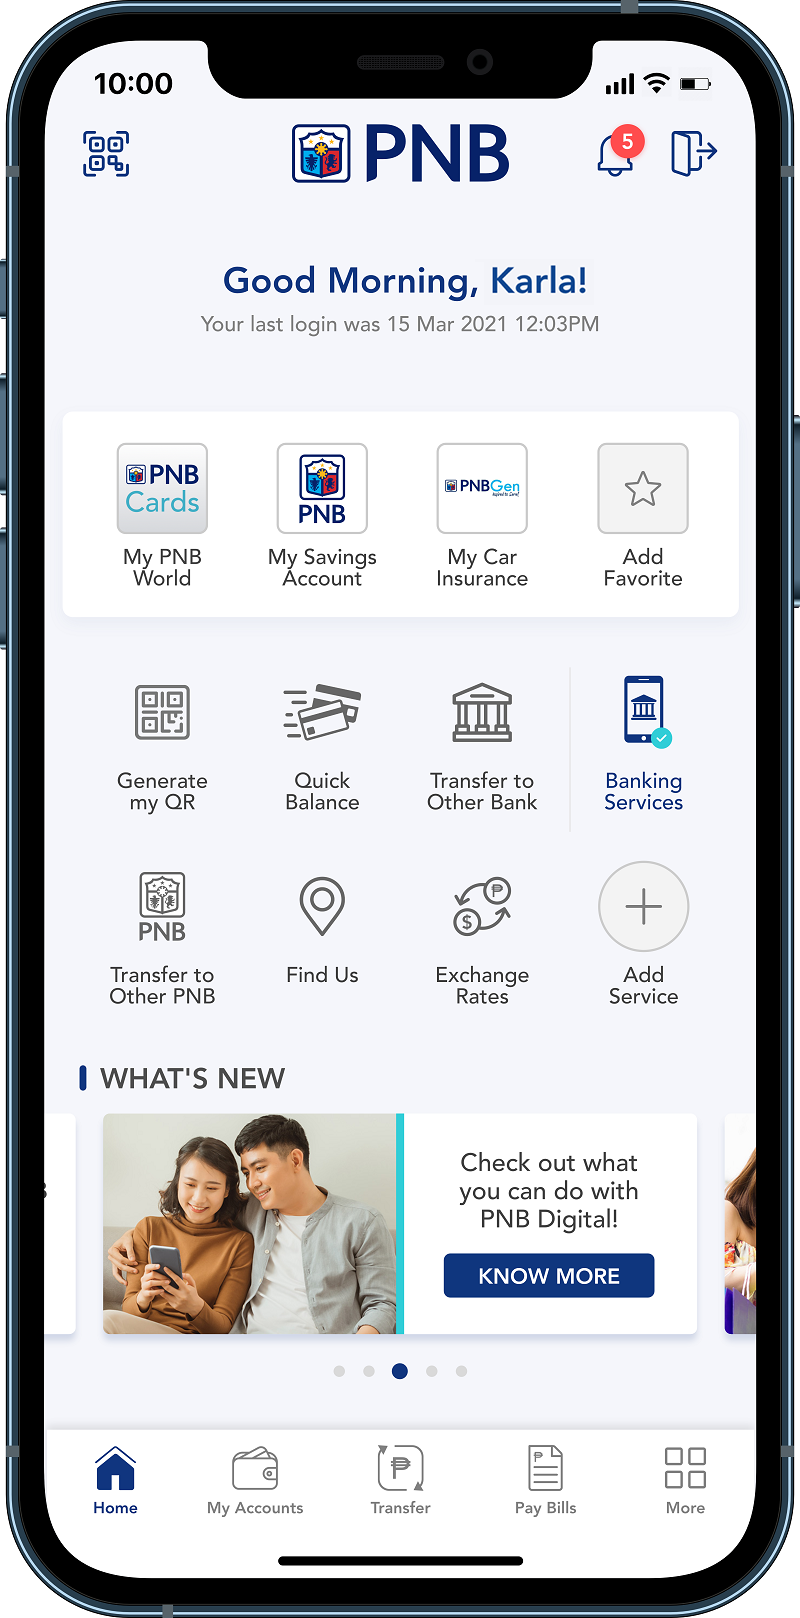 pnb-mobile-banking-app-accounts-for-enroll